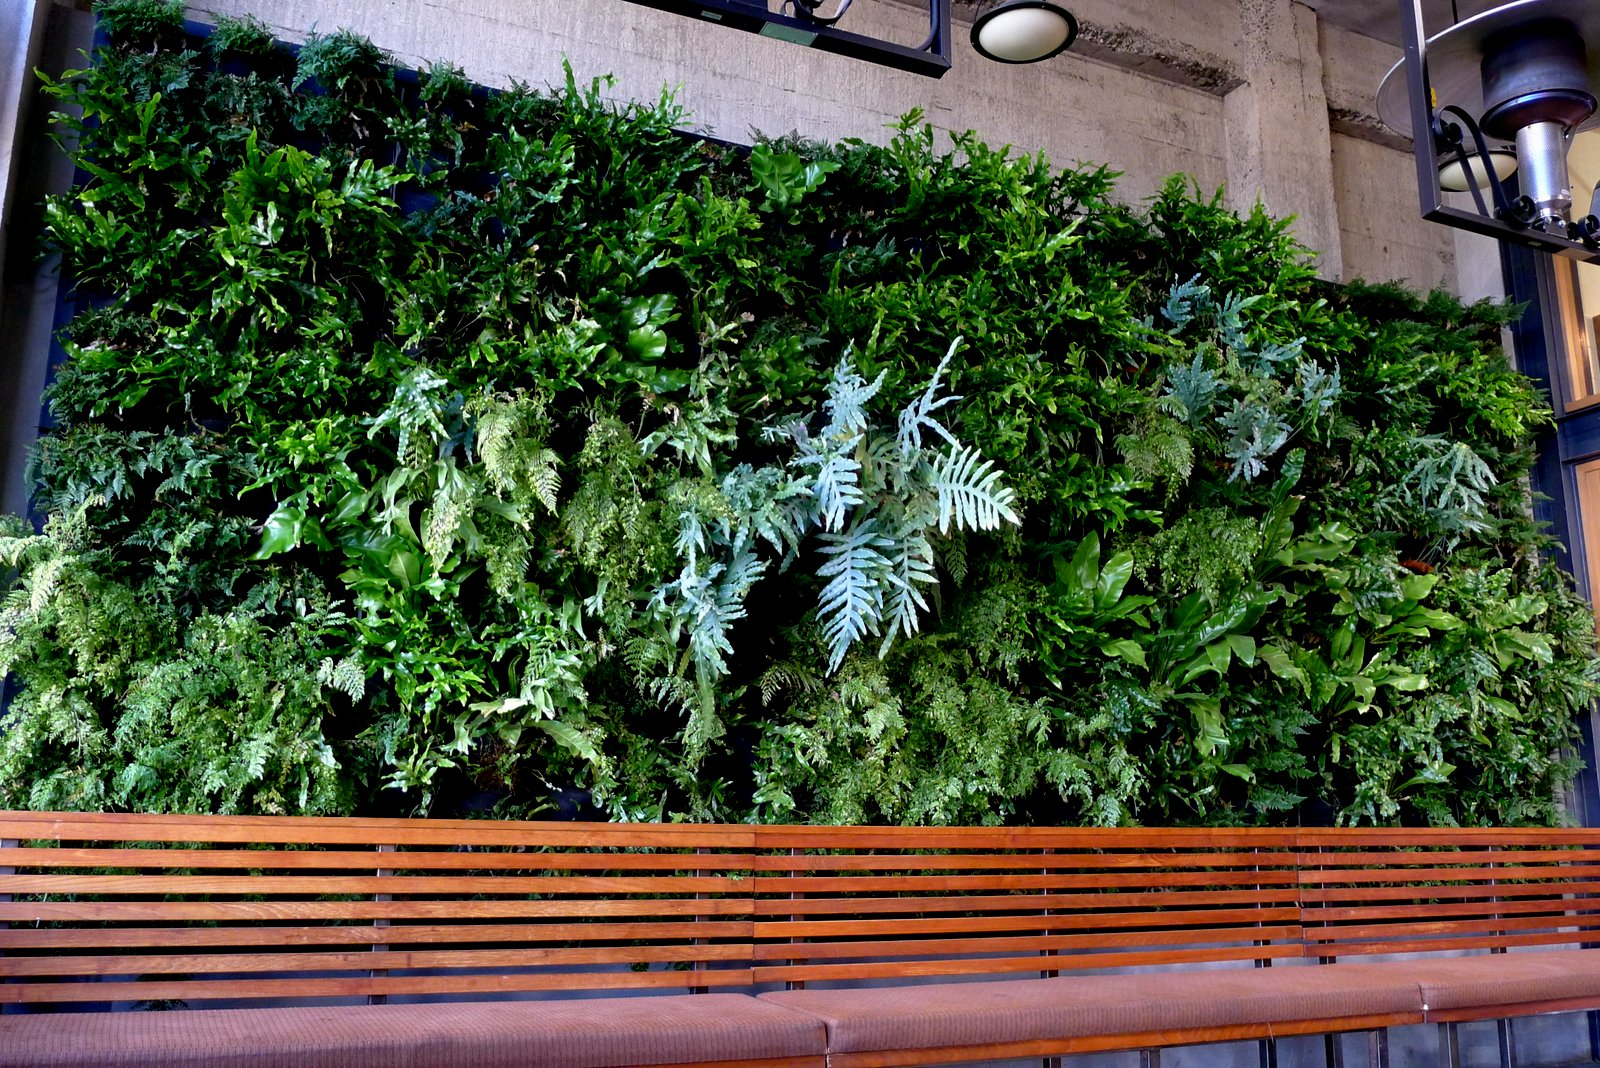 Plants on walls vertical garden systems plants on walls for Wall garden system